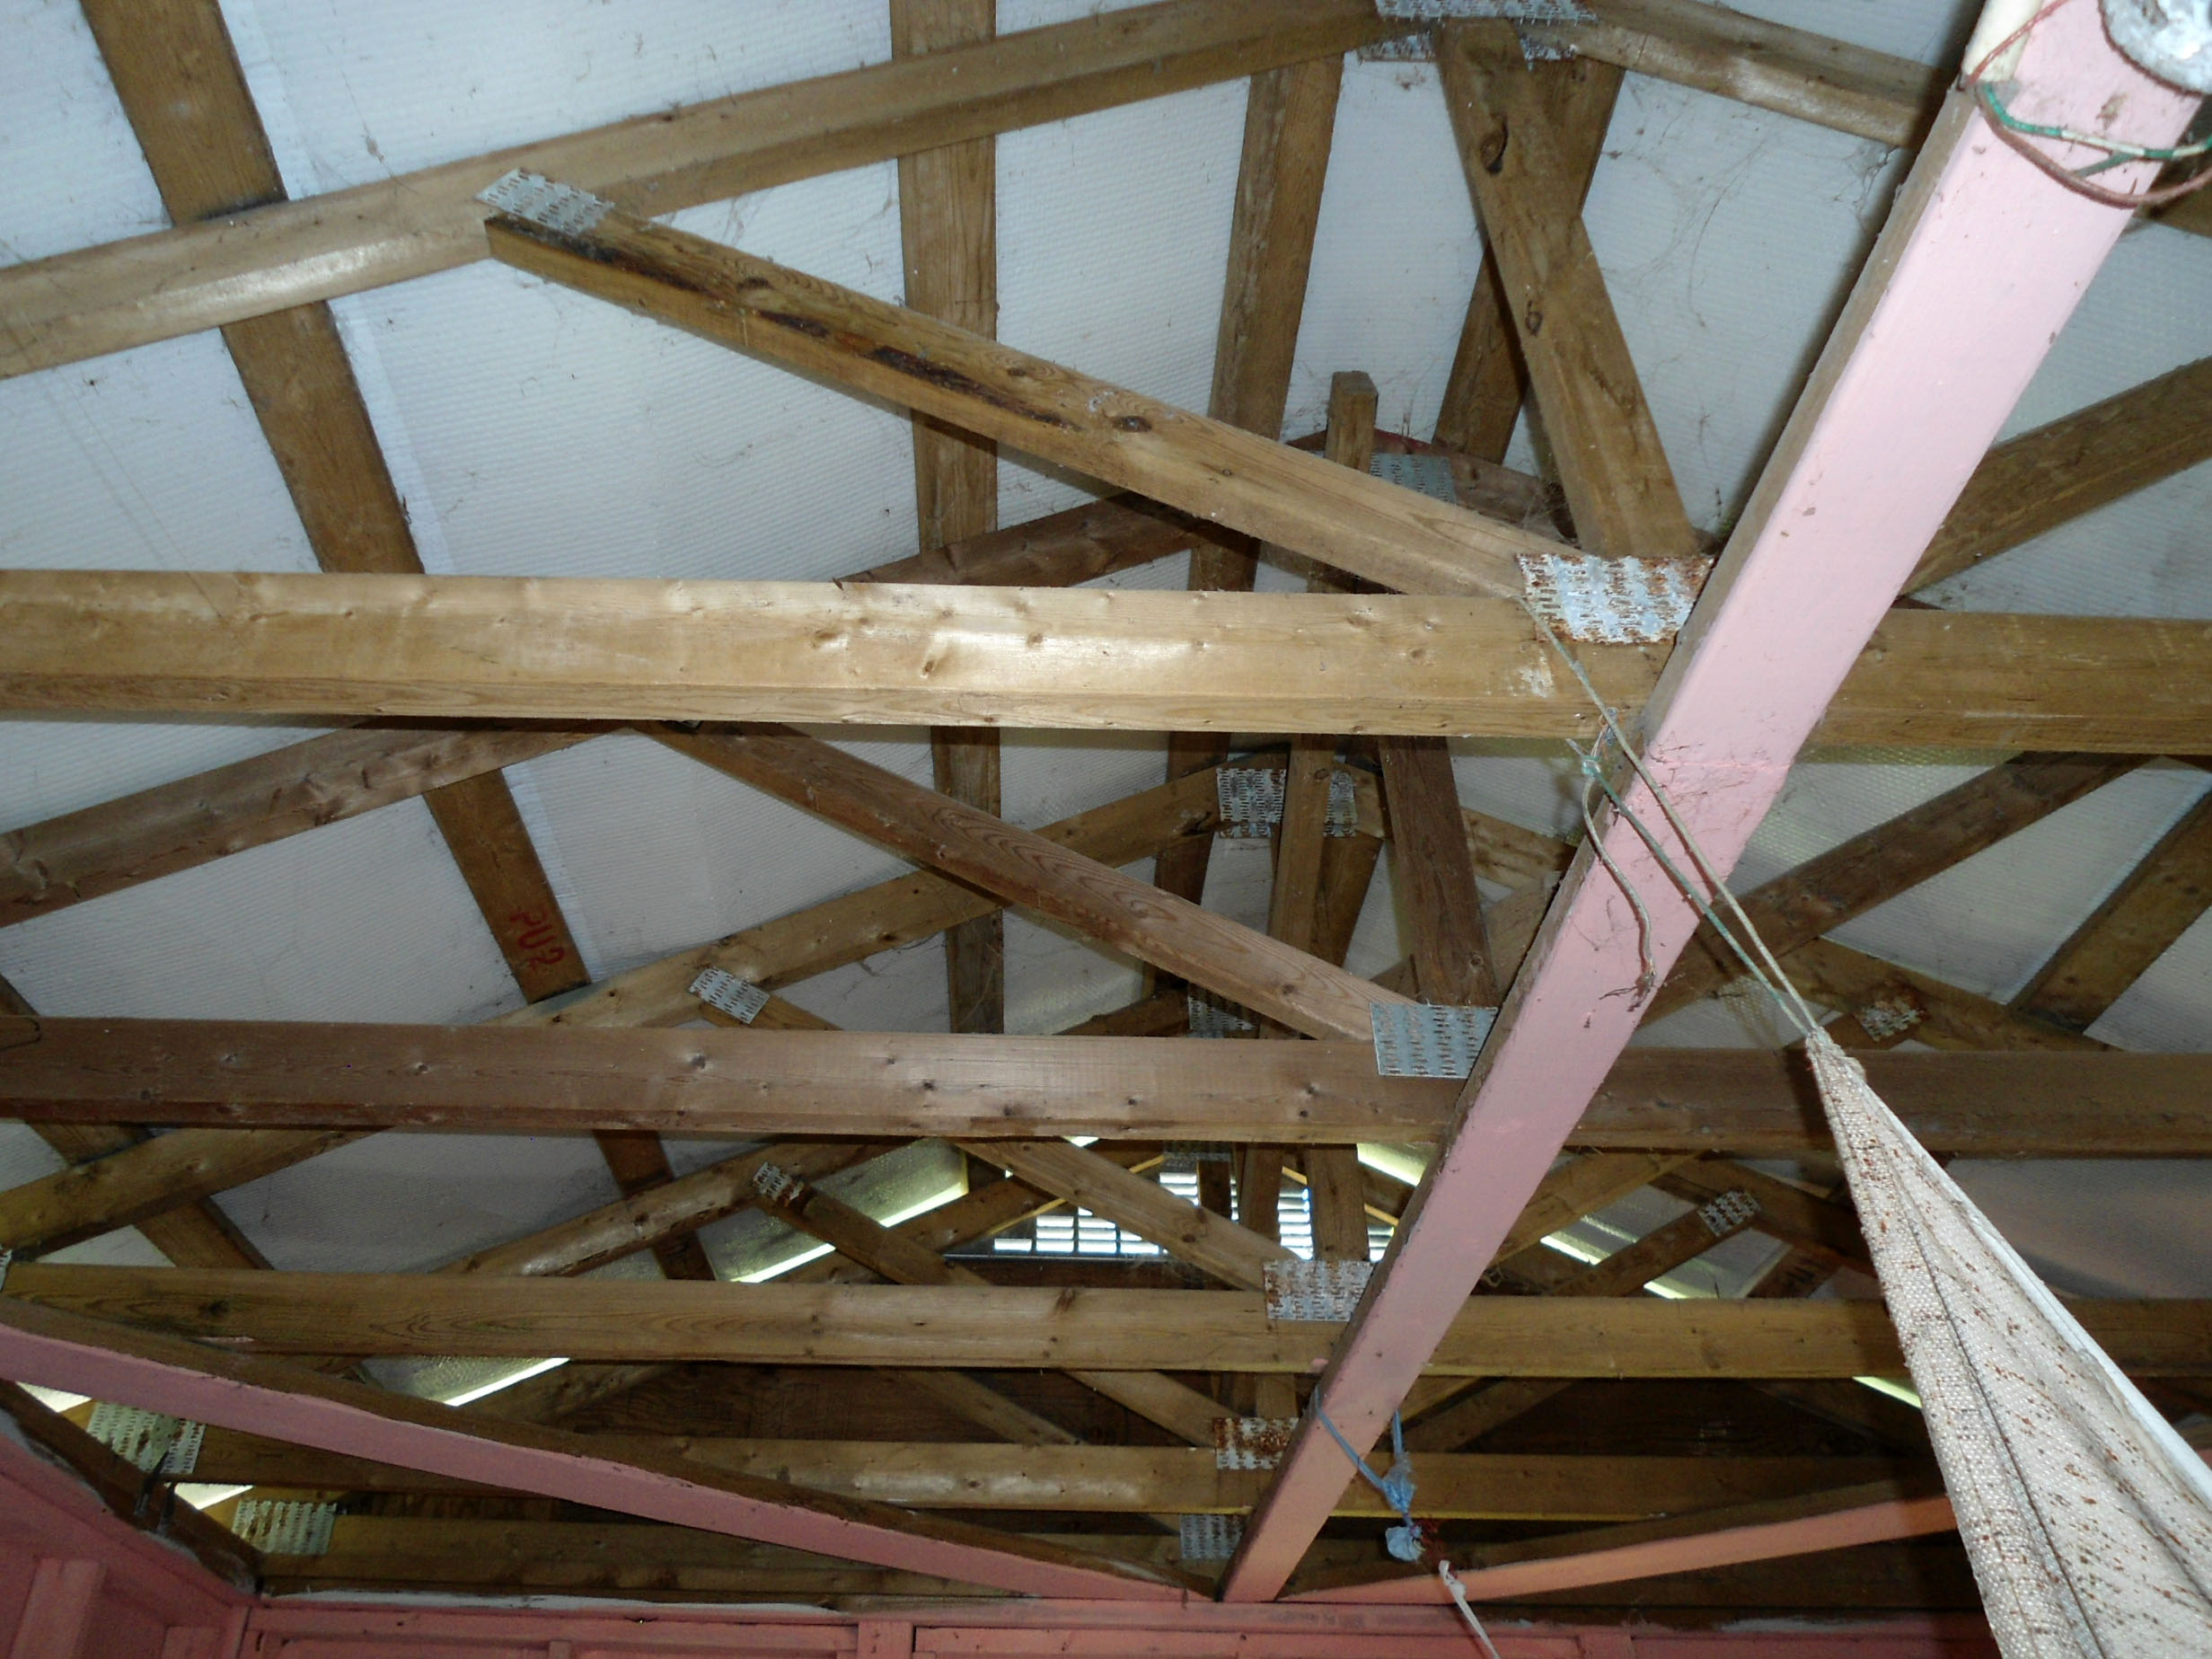 data/shelters/pictures/HT012/CRC A_Roof_Trusses.jpg